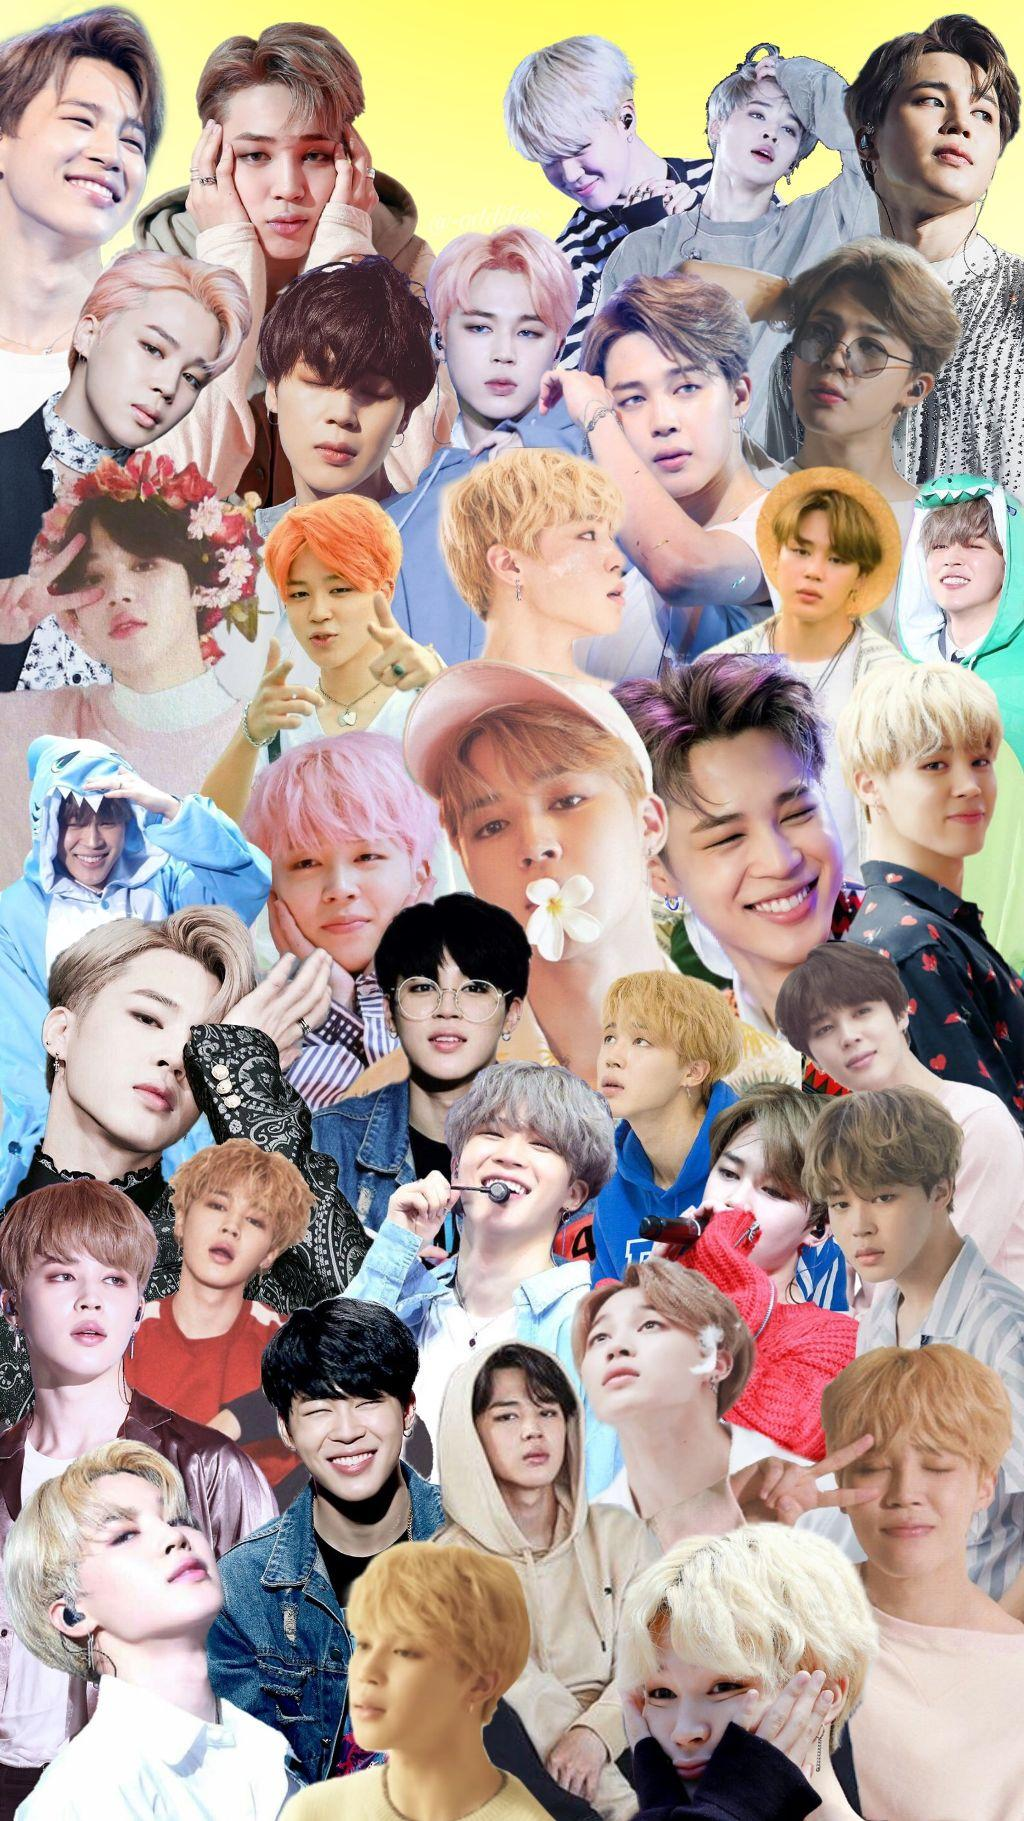 Bts Collage Wallpapers Wallpaper Cave